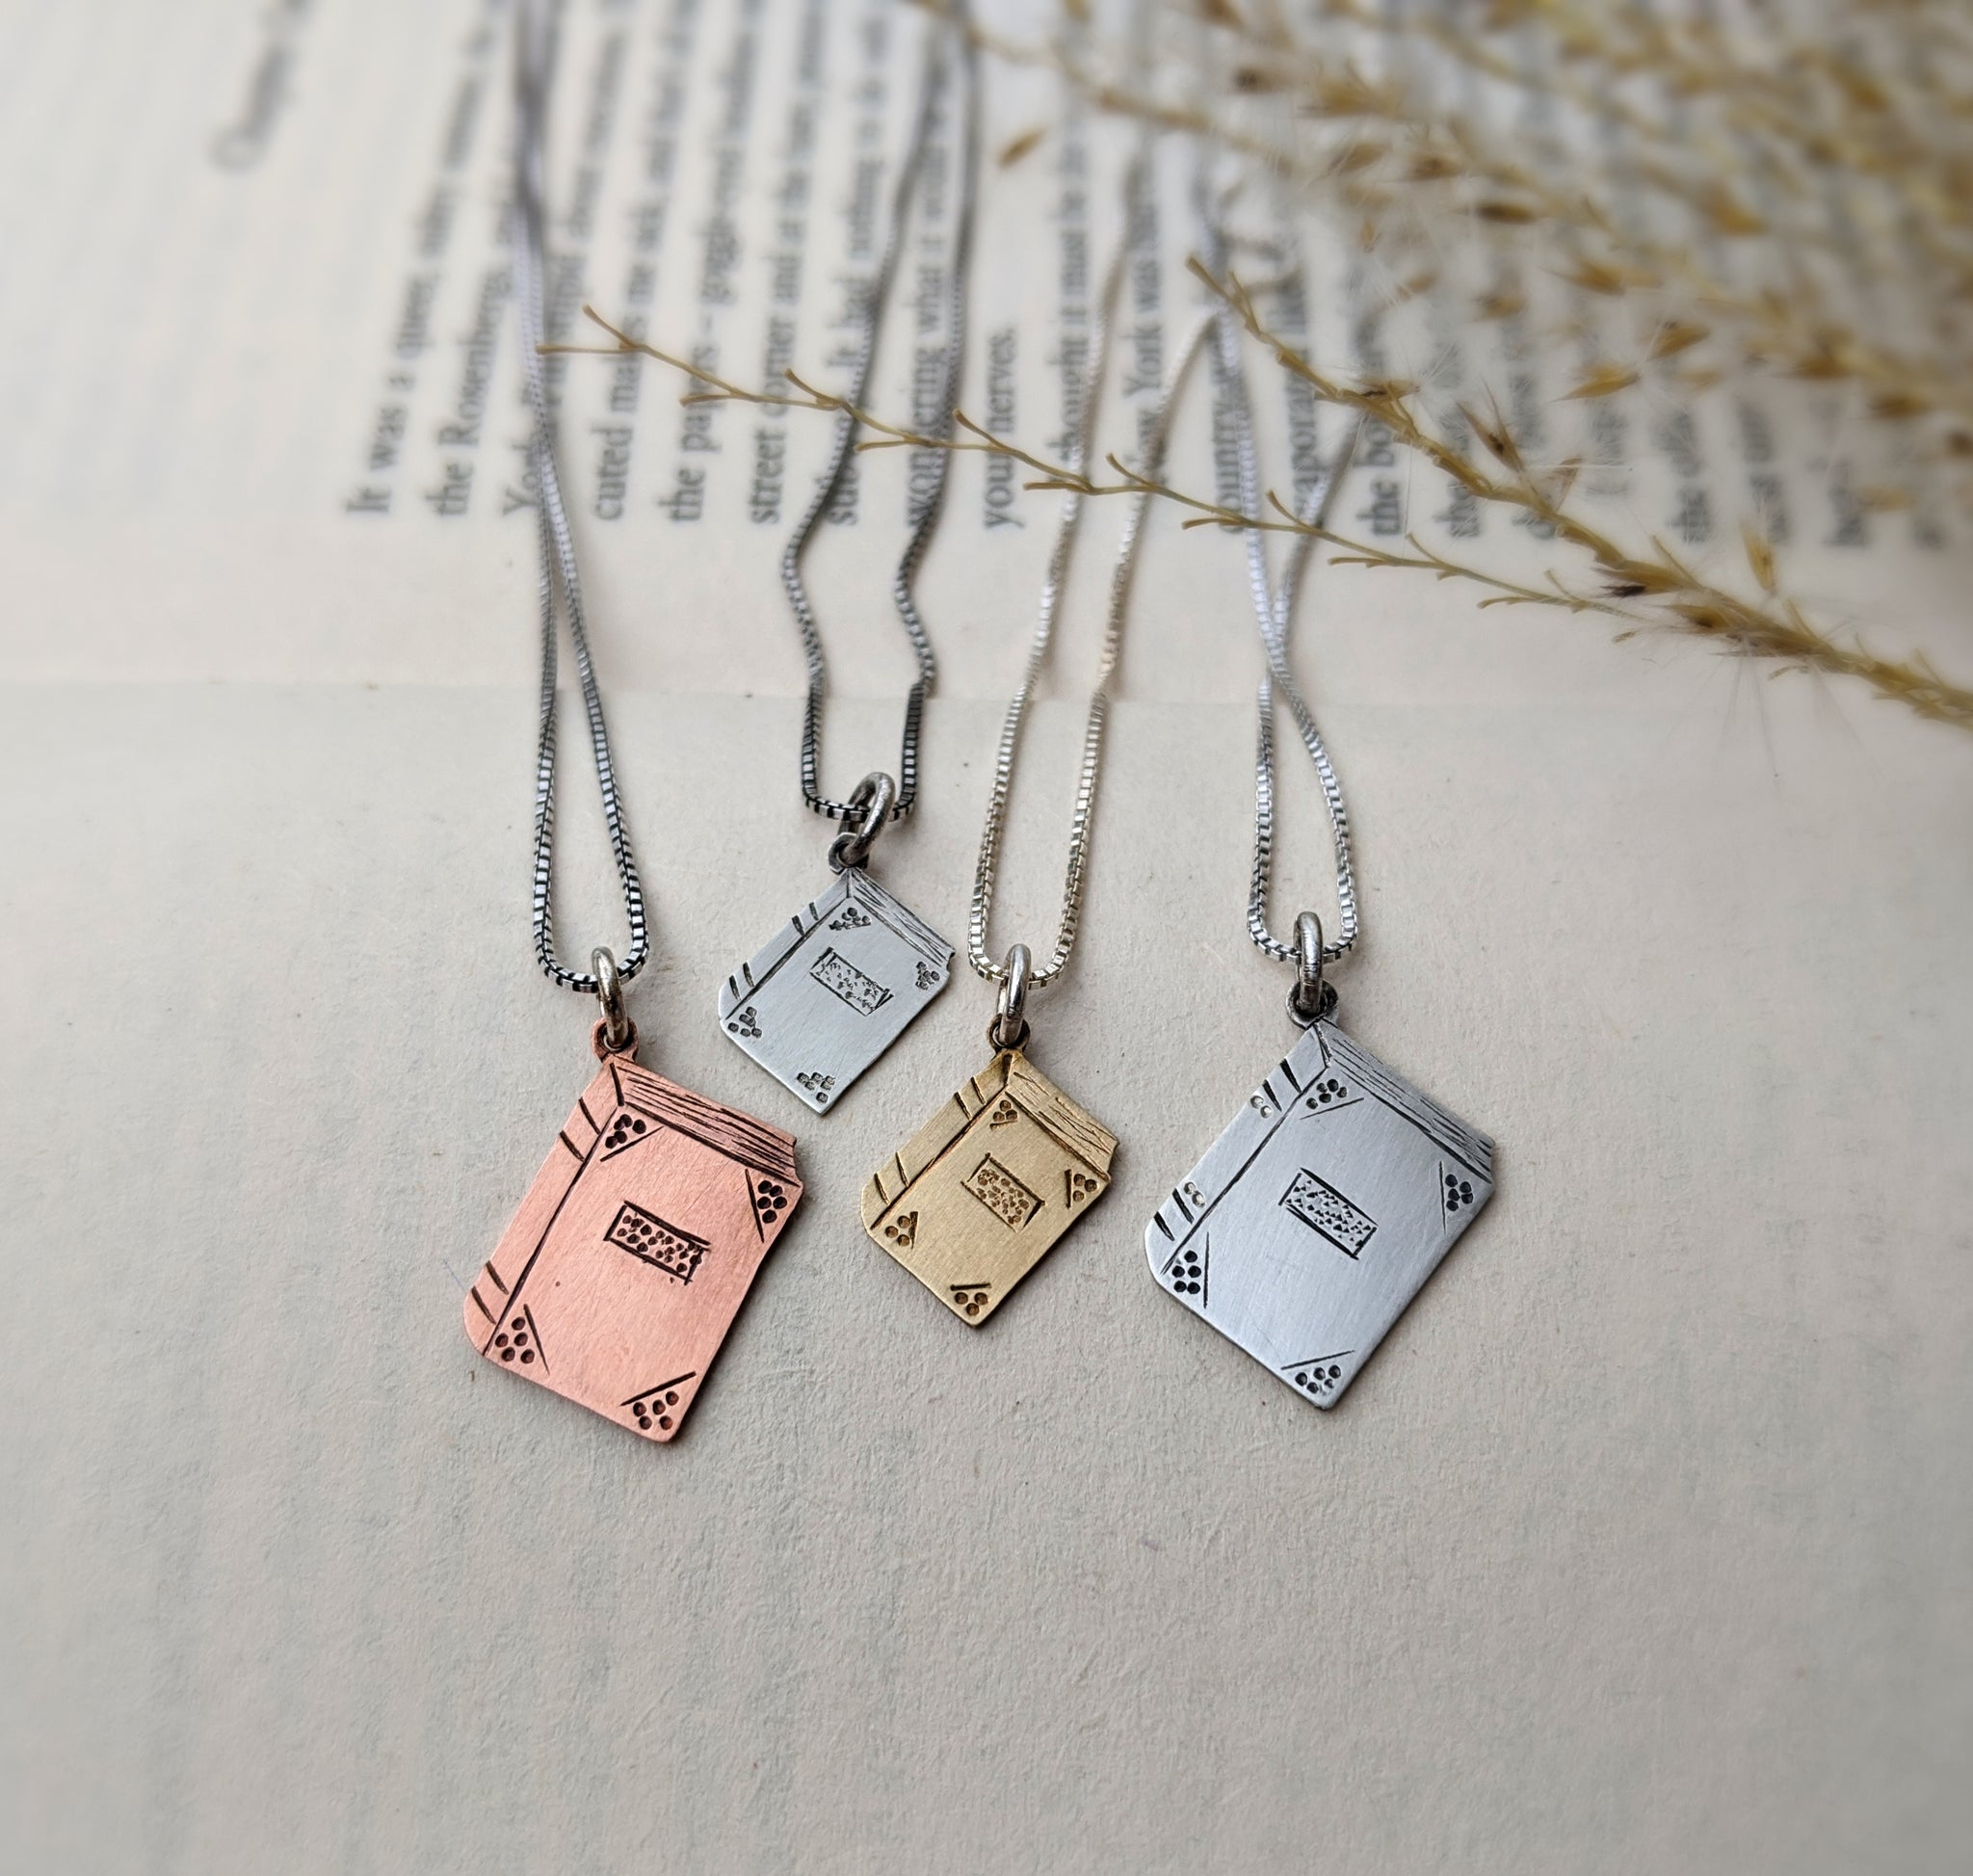 Bibliophile - Book lover necklace